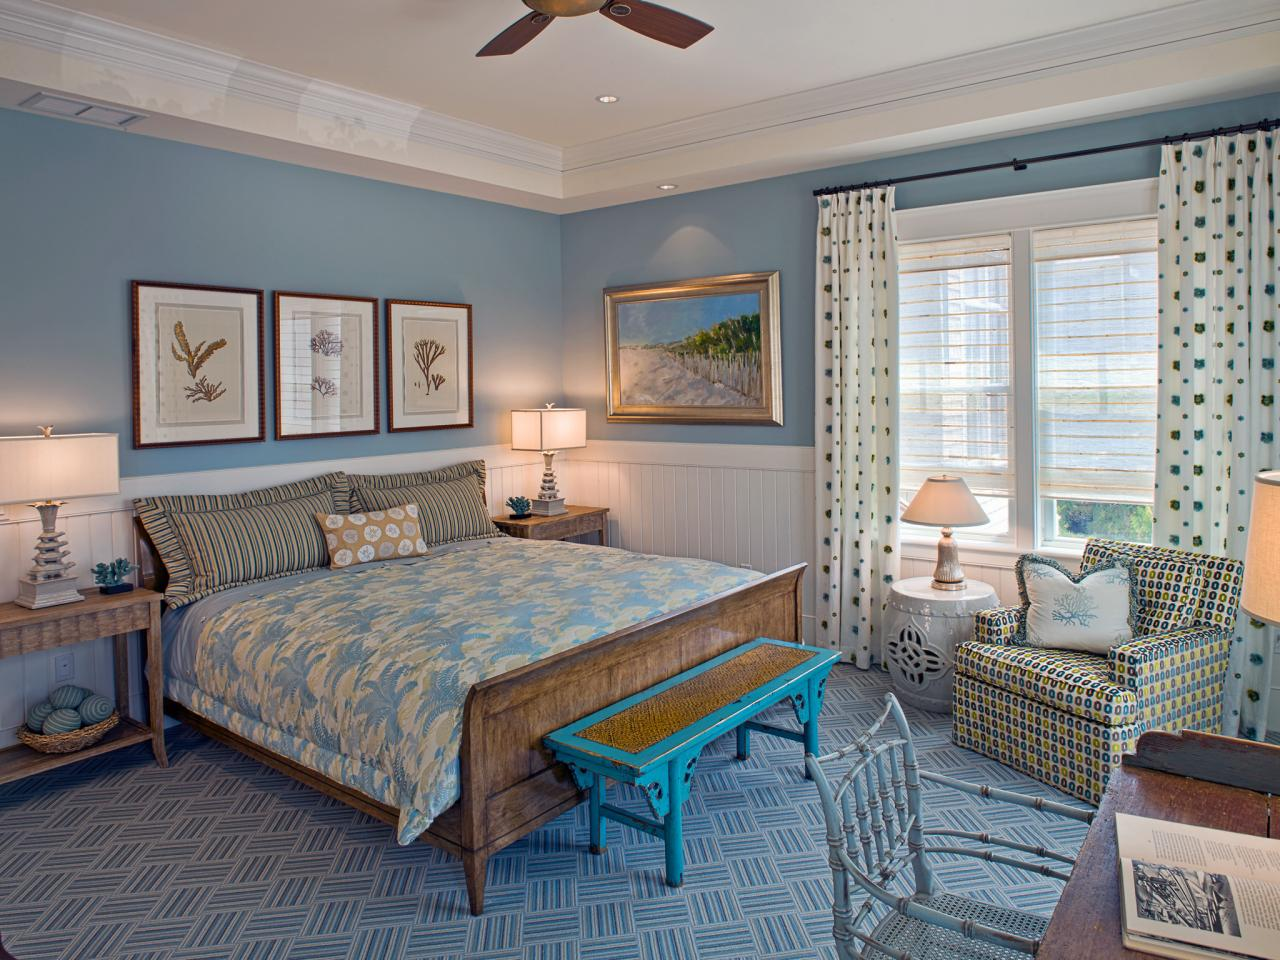 How to choose the best color schemes for bedrooms ...